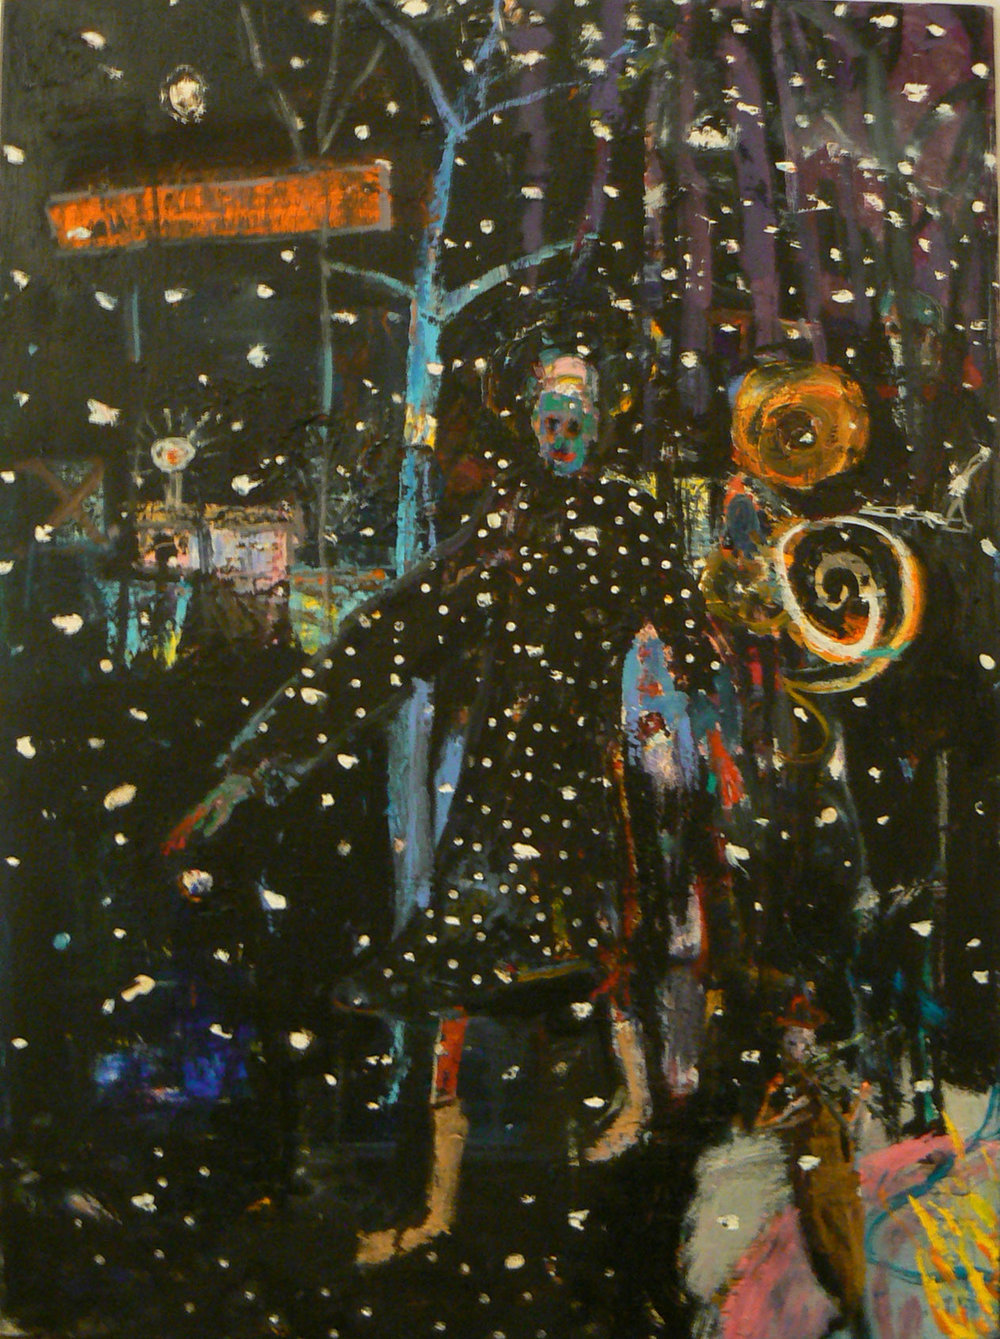 Matthew Blackwell,  Trance Dance,  2009-2012, oil on canvas with collage, 42h x 30w in.